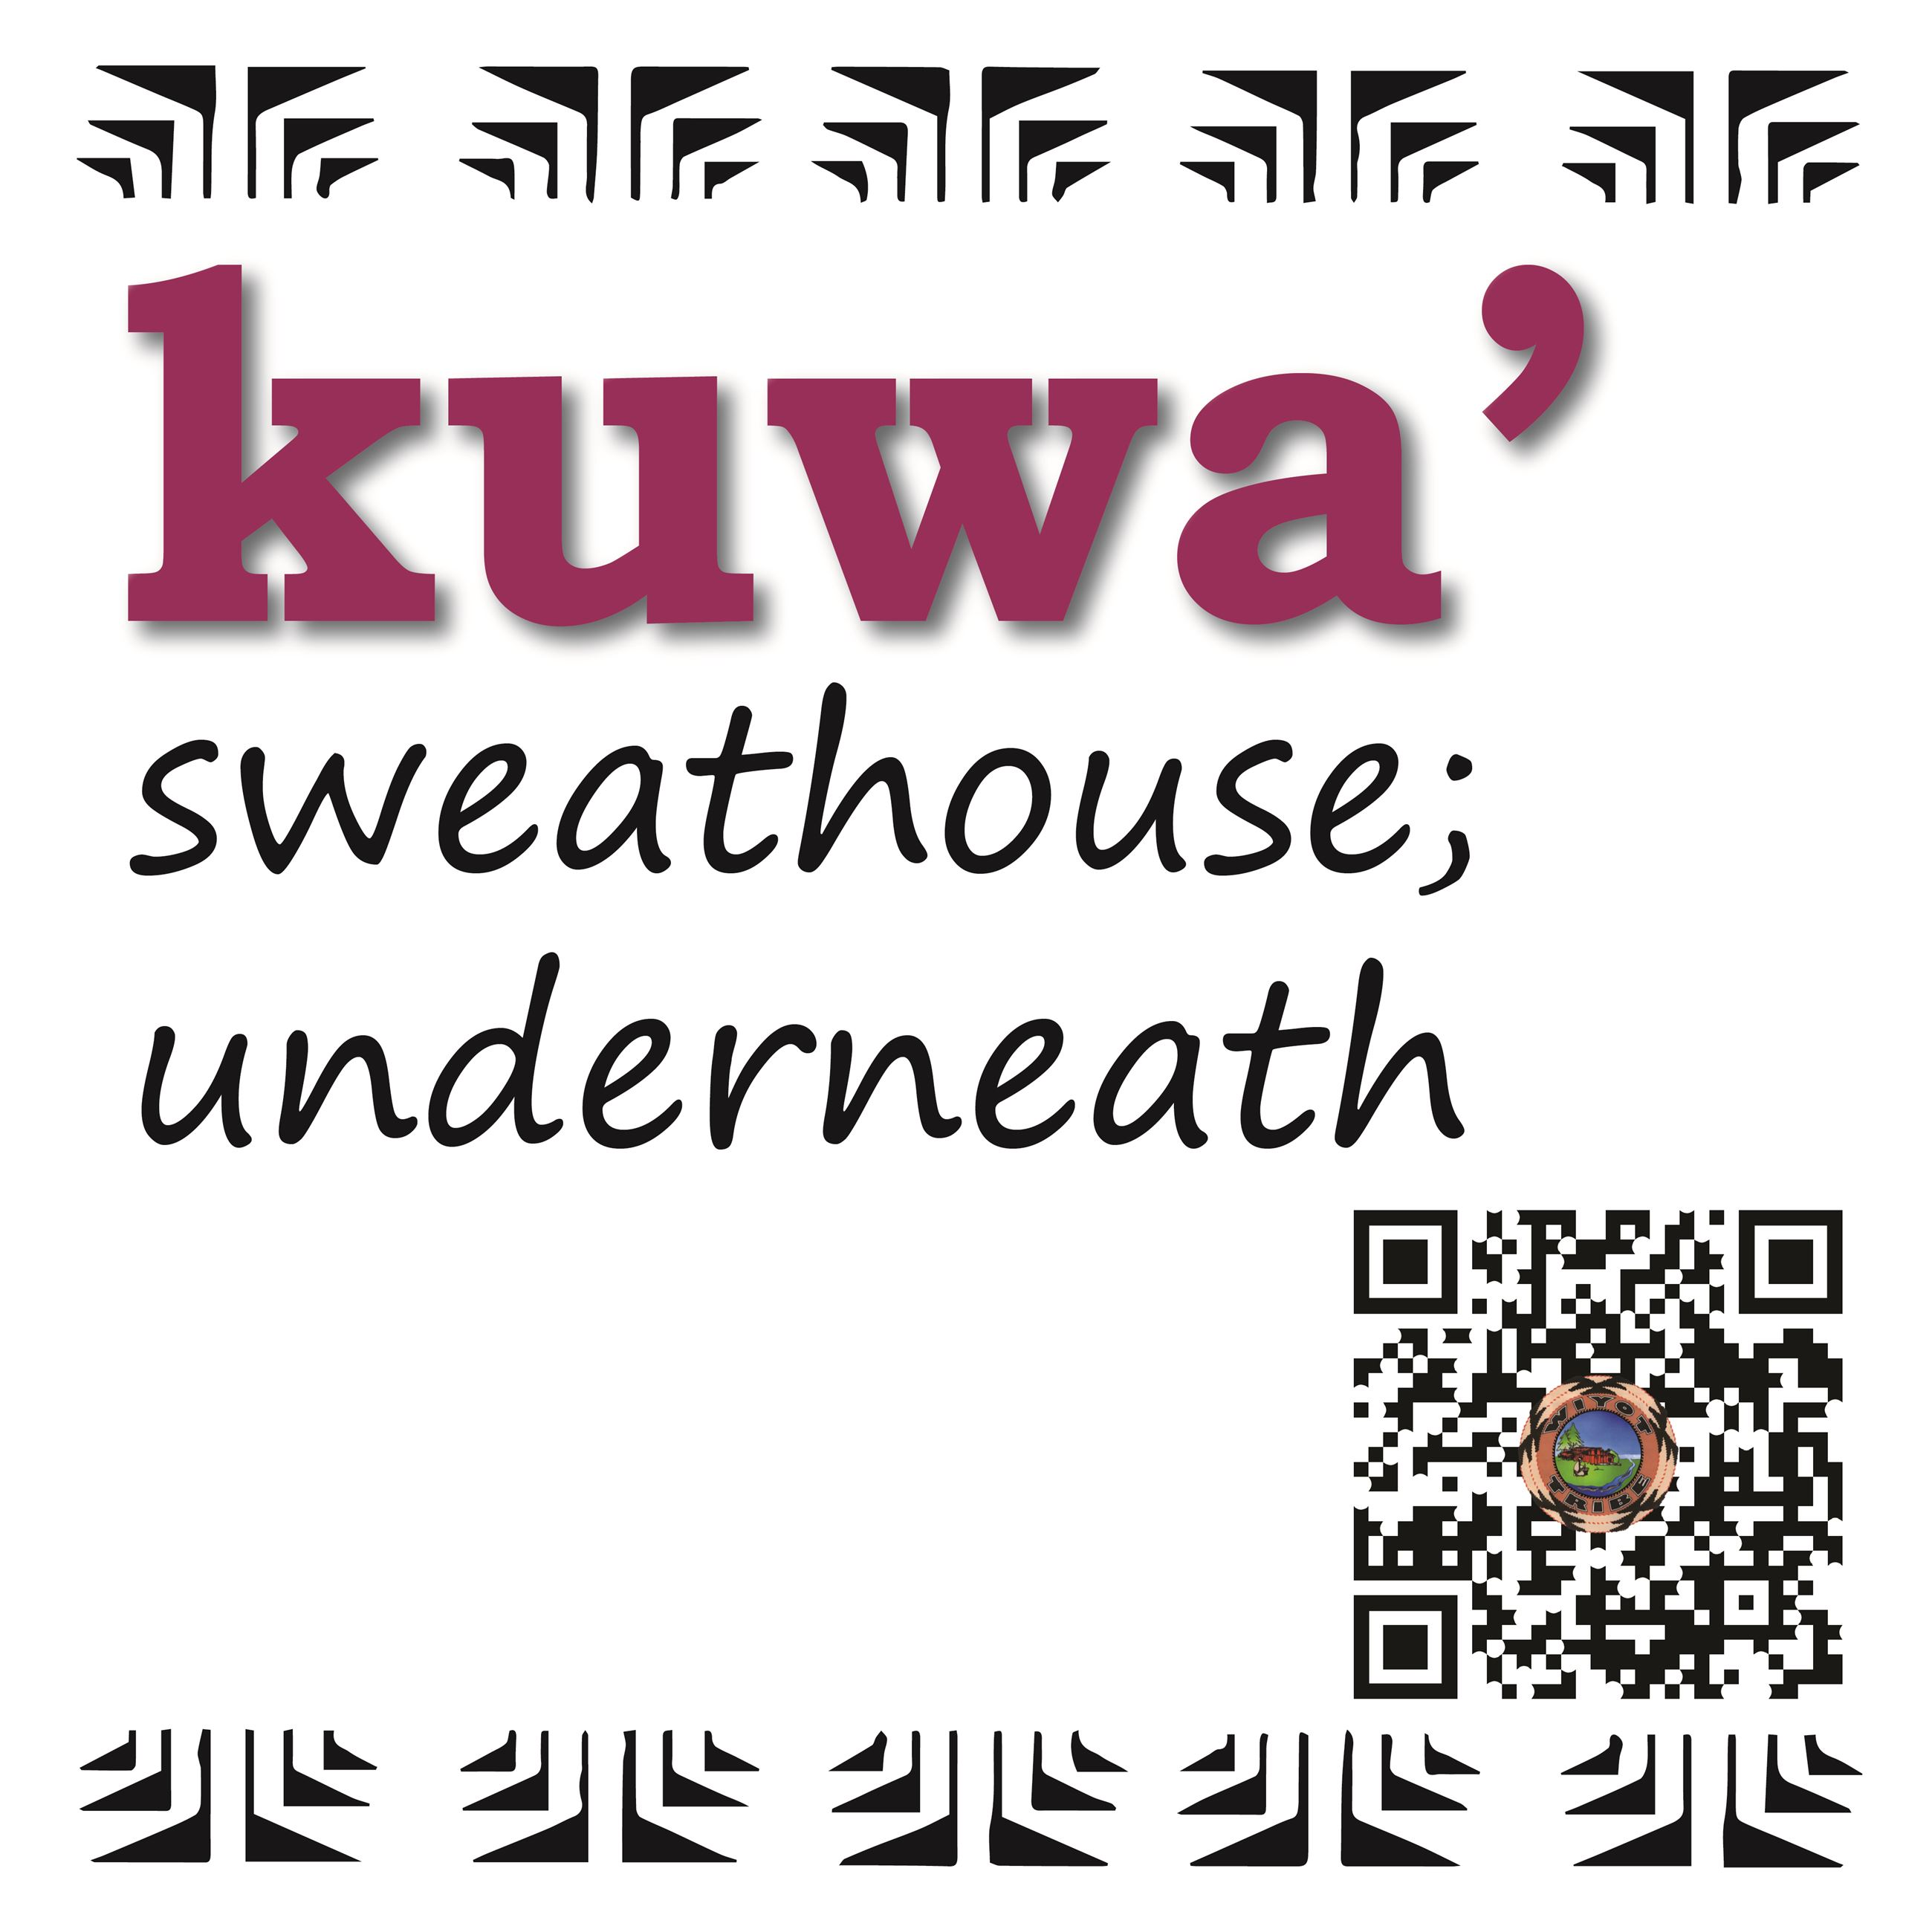 kuwa' (sweathouse; underneath)